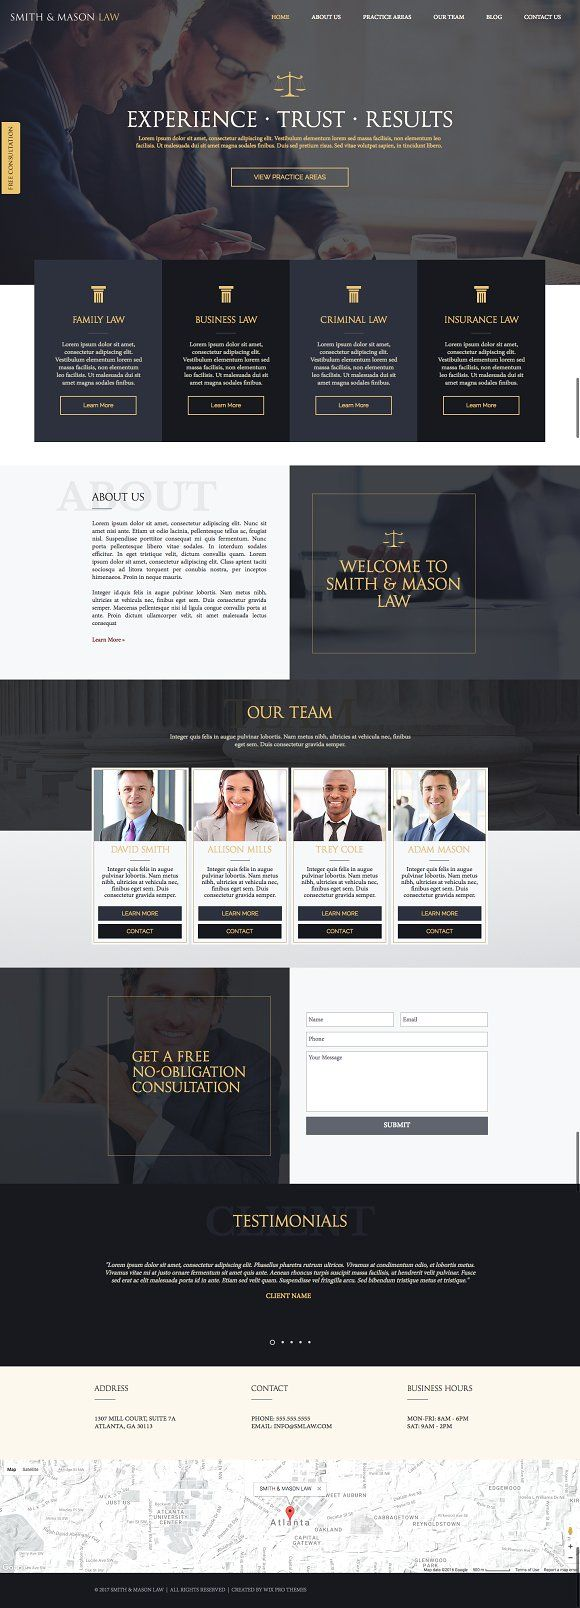 Law Firm Website Theme   Law firm website, Website themes and Website